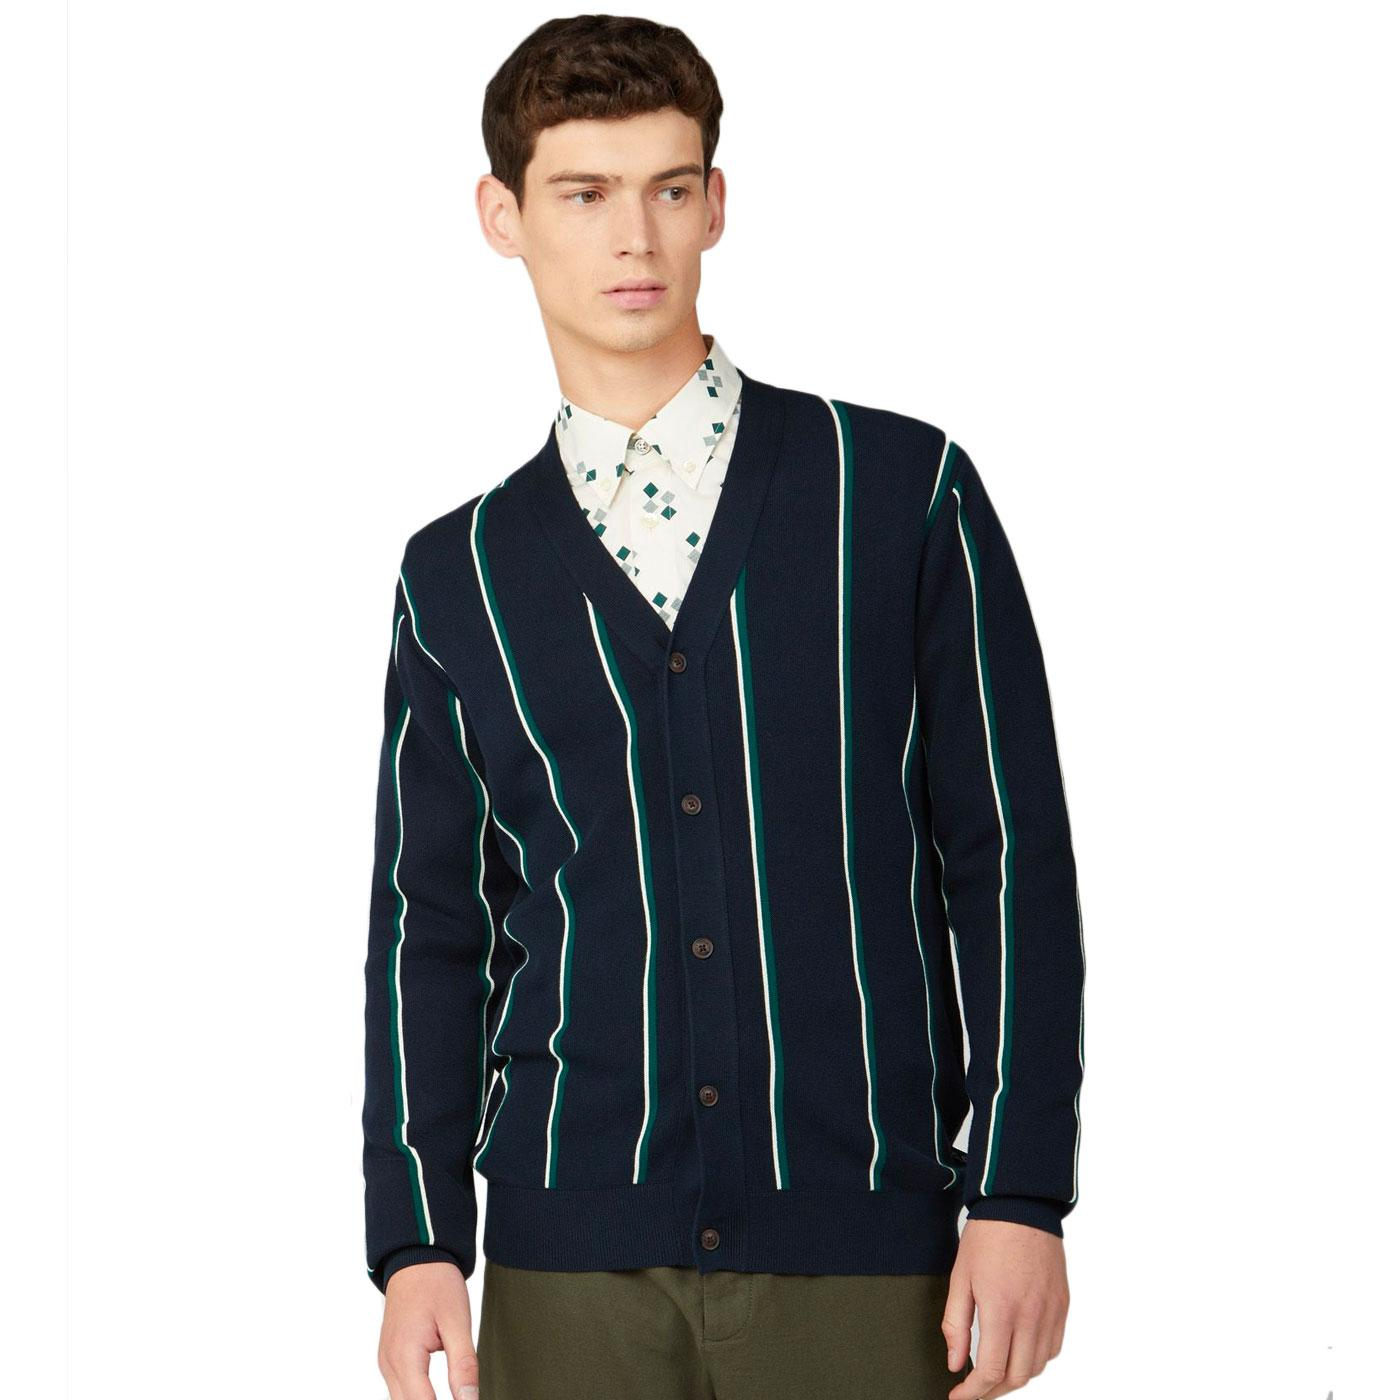 BEN SHERMAN Retro 60s Ivy League Striped Cardigan